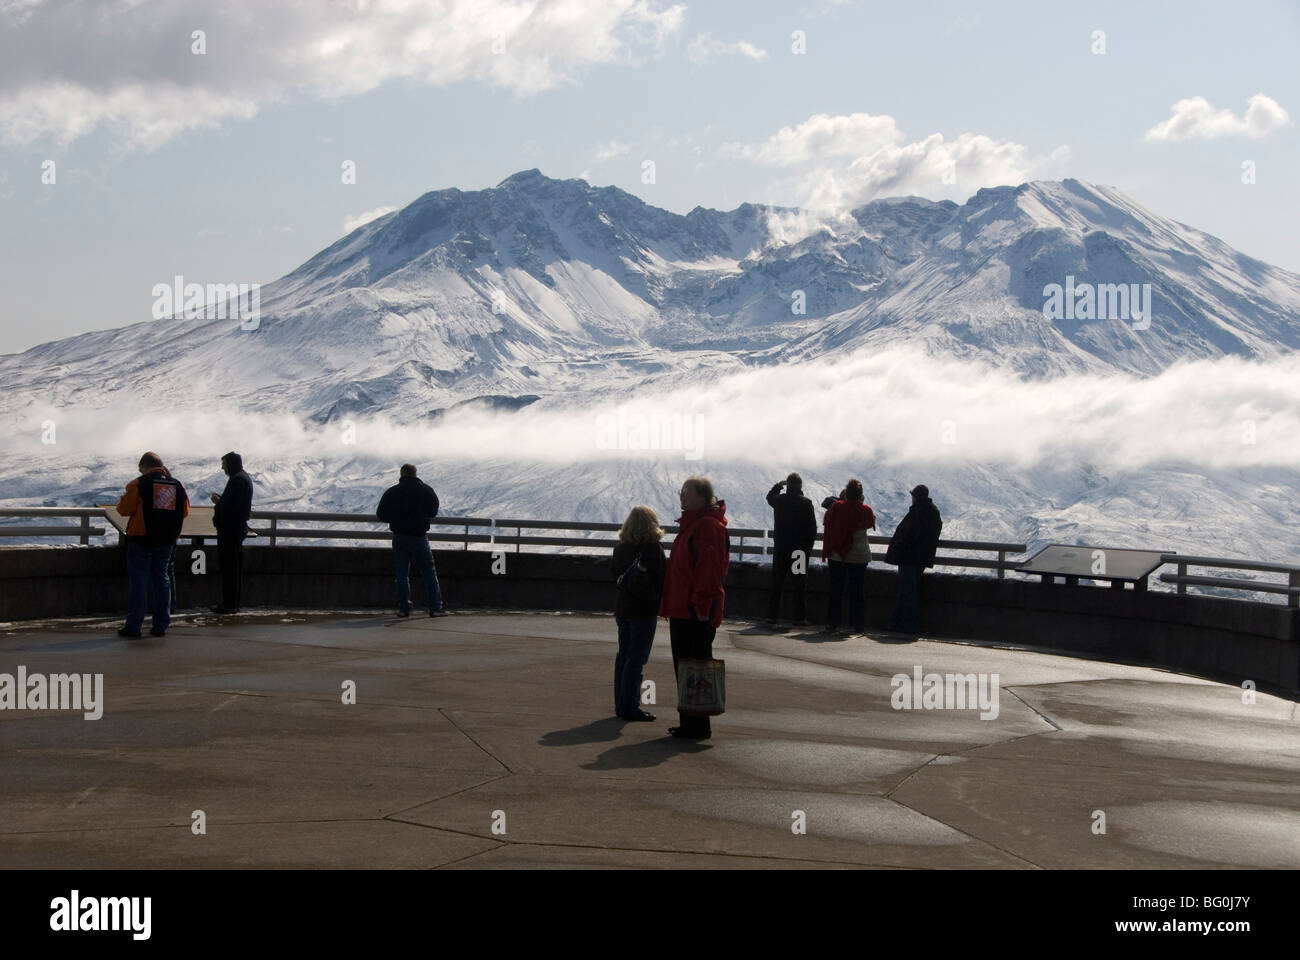 Mount St. Helens, steam plume from rising dome within crater, seen from Johnston Ridge Visitor Centre, Washington - Stock Image